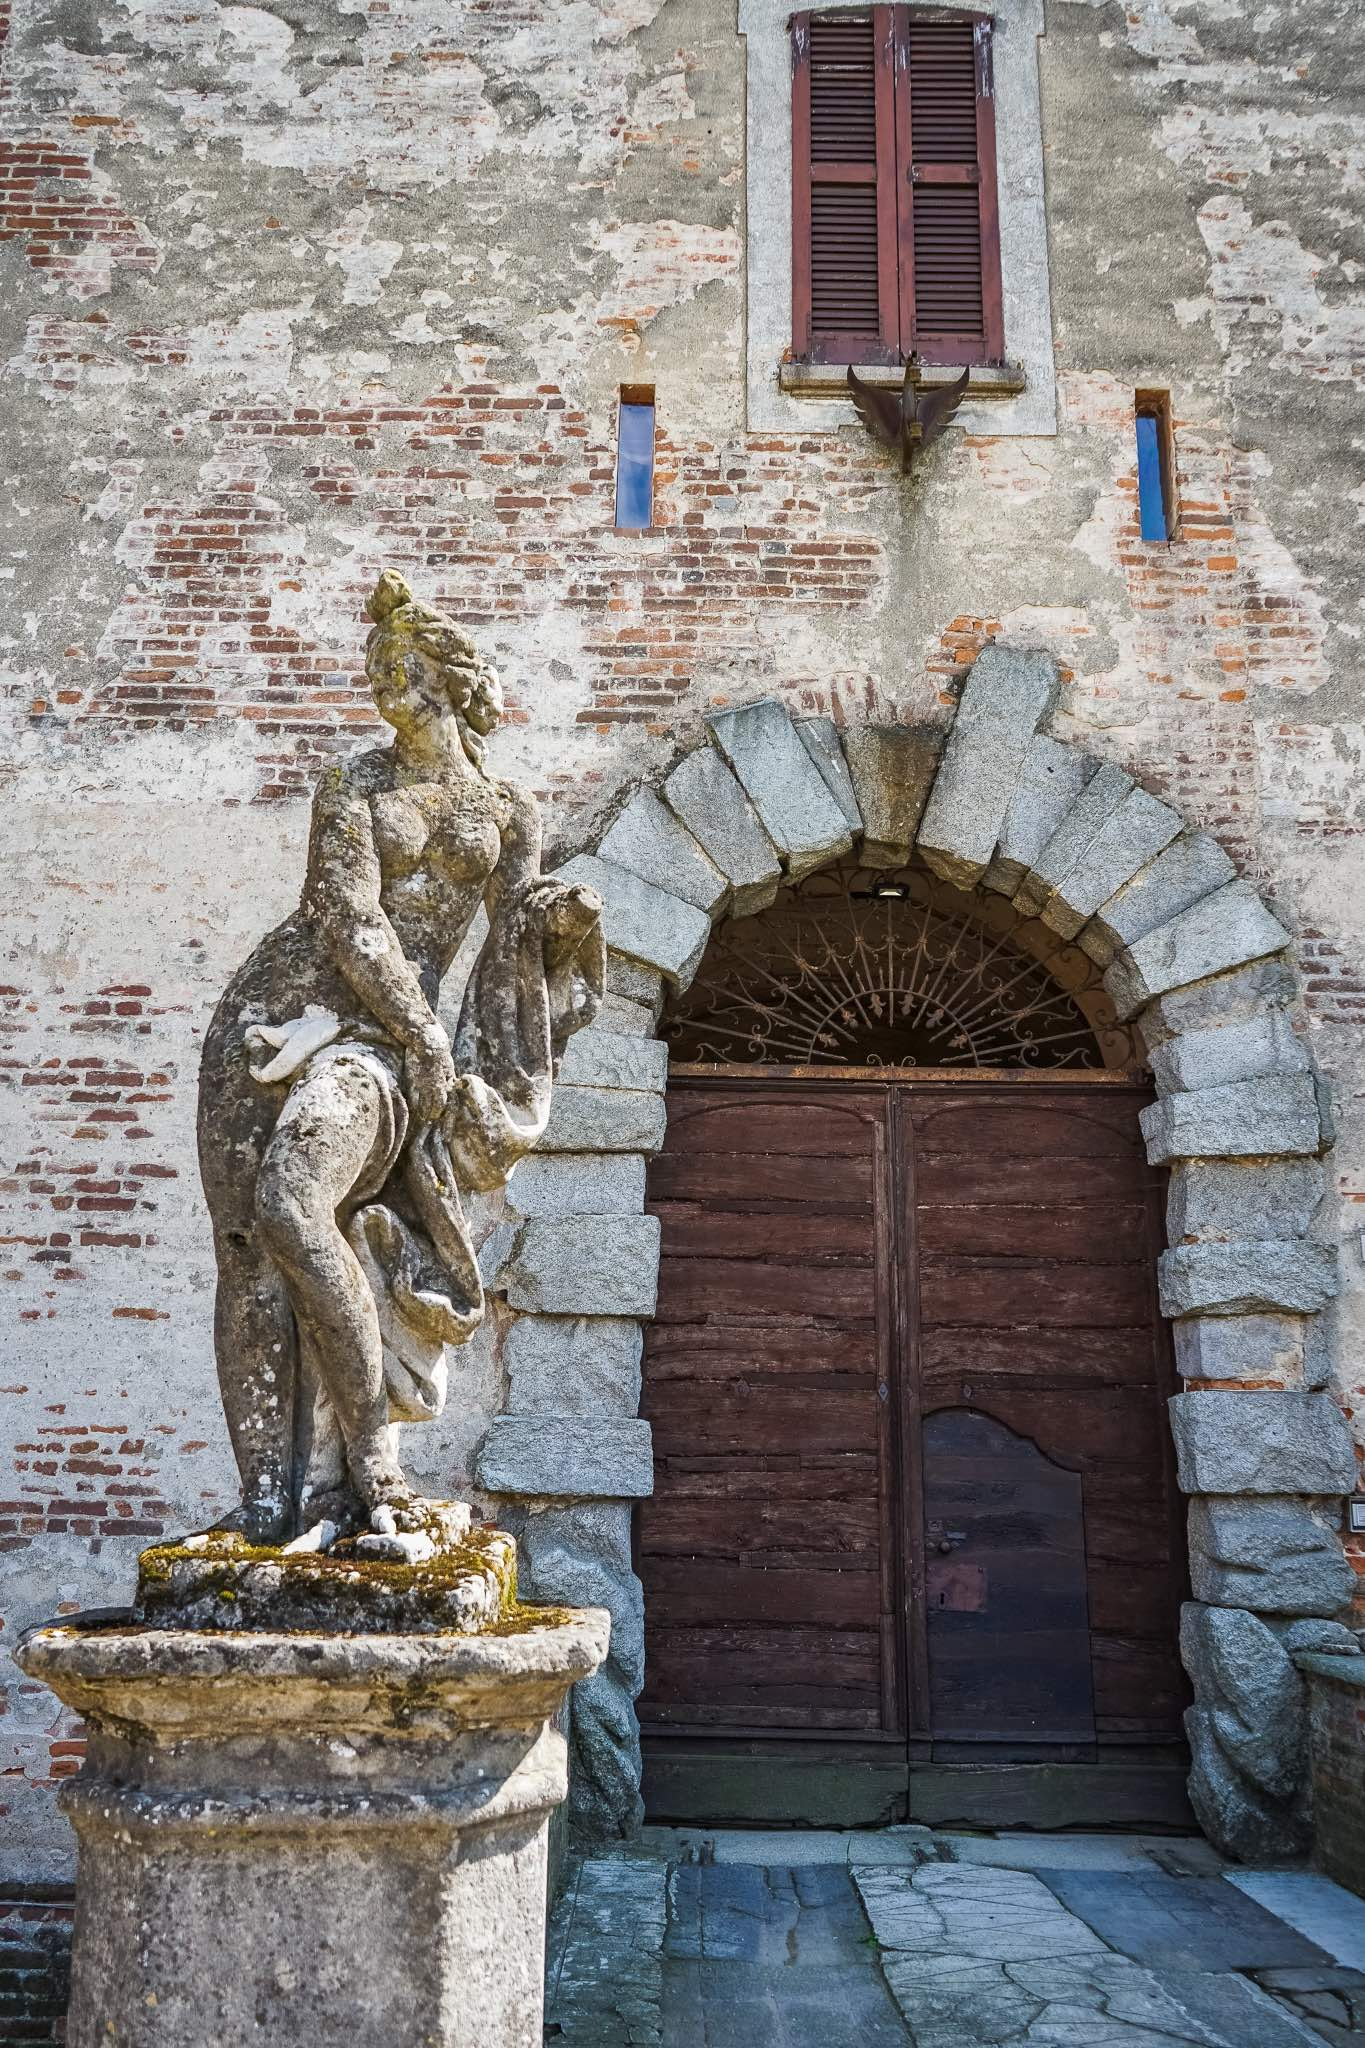 A statue in the gardens of the Castle of Chignolo Po in Lombardy